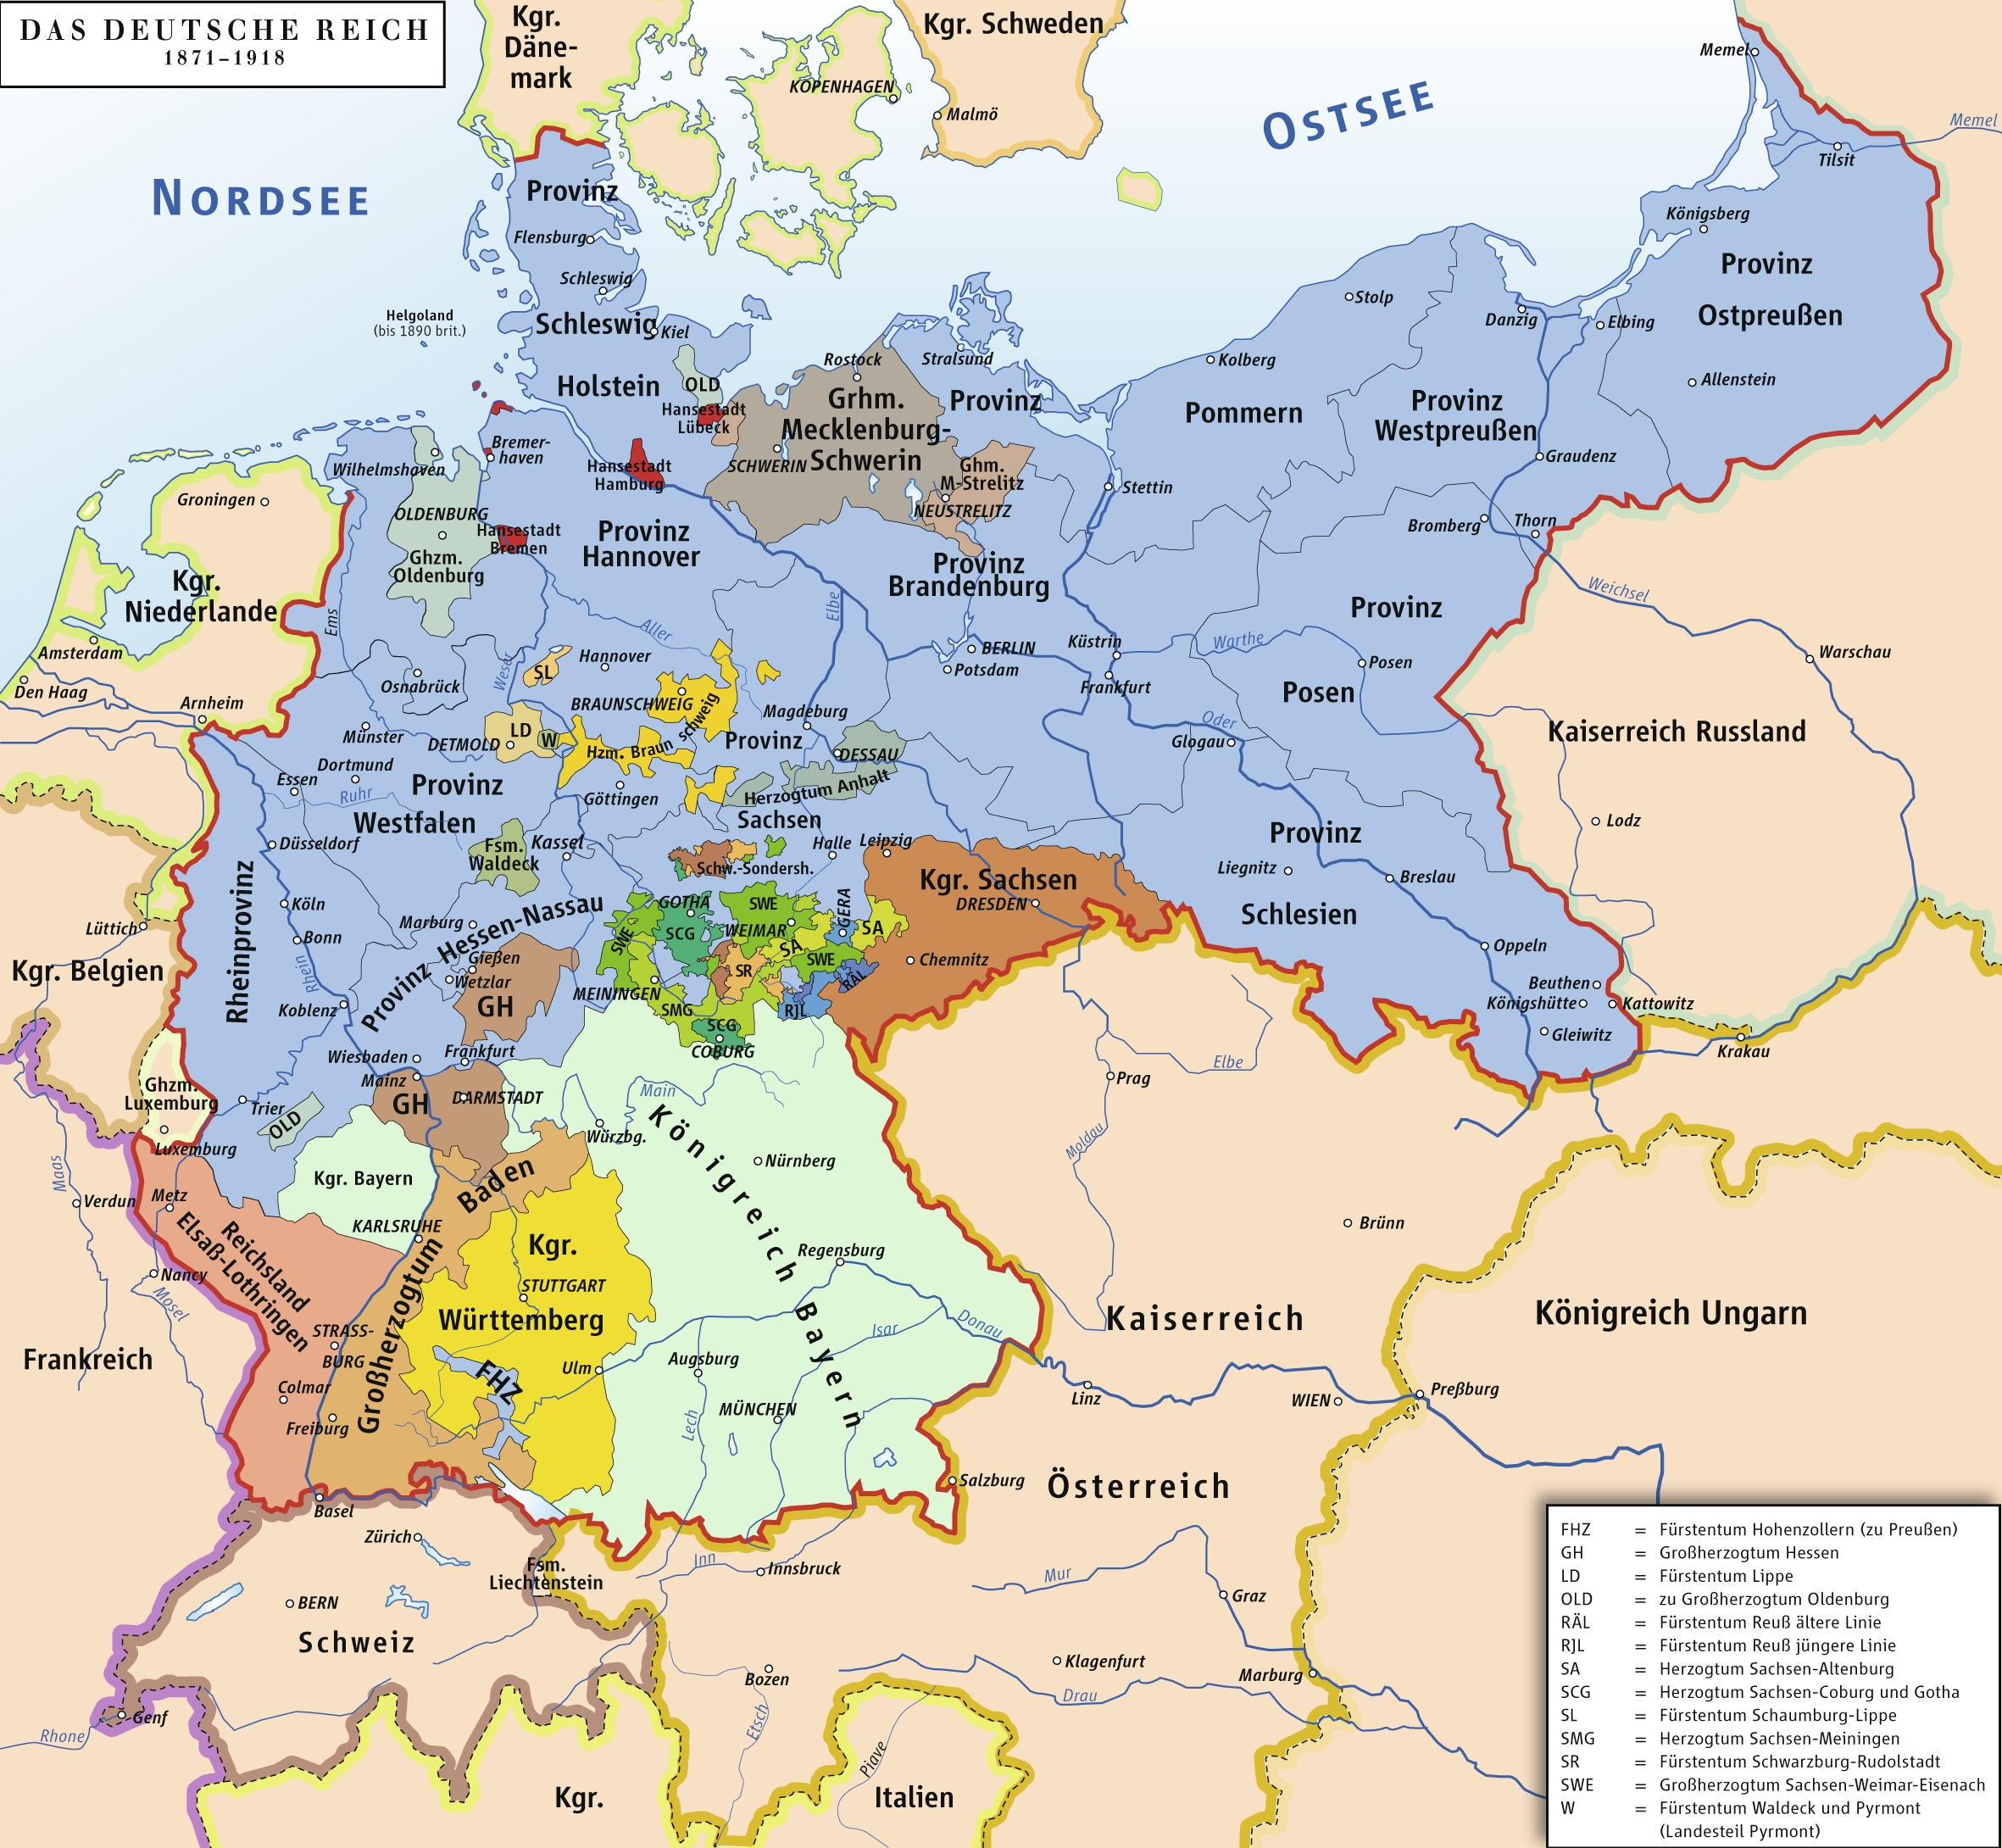 States Of The German Empire Map 1871-1918 - Vgs German Sig in Map Of Germany And Its States